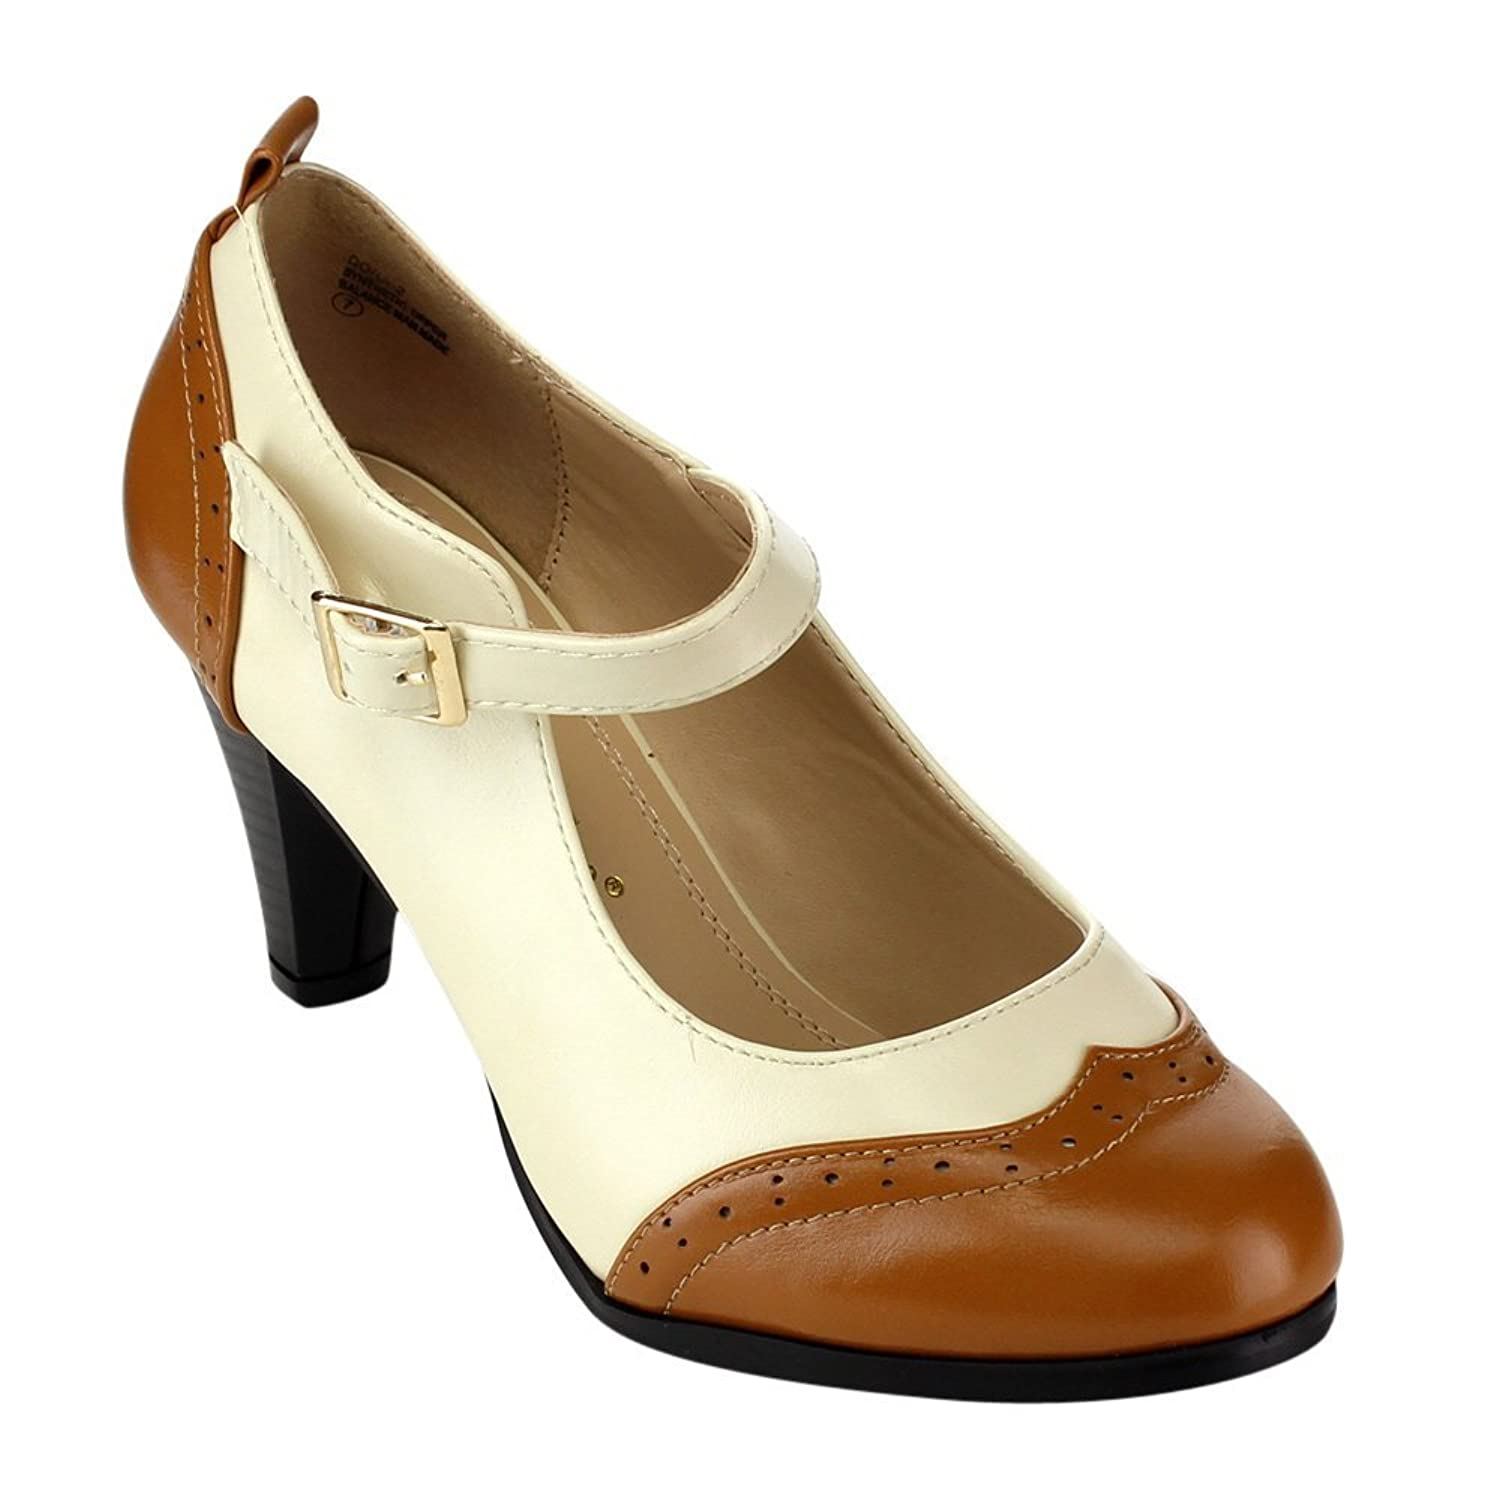 Vintage Style Shoes, Vintage Inspired Shoes Chase & Chloe Dora-2 Womens Round Toe Two Tone Mary Jane Pumps $32.99 AT vintagedancer.com